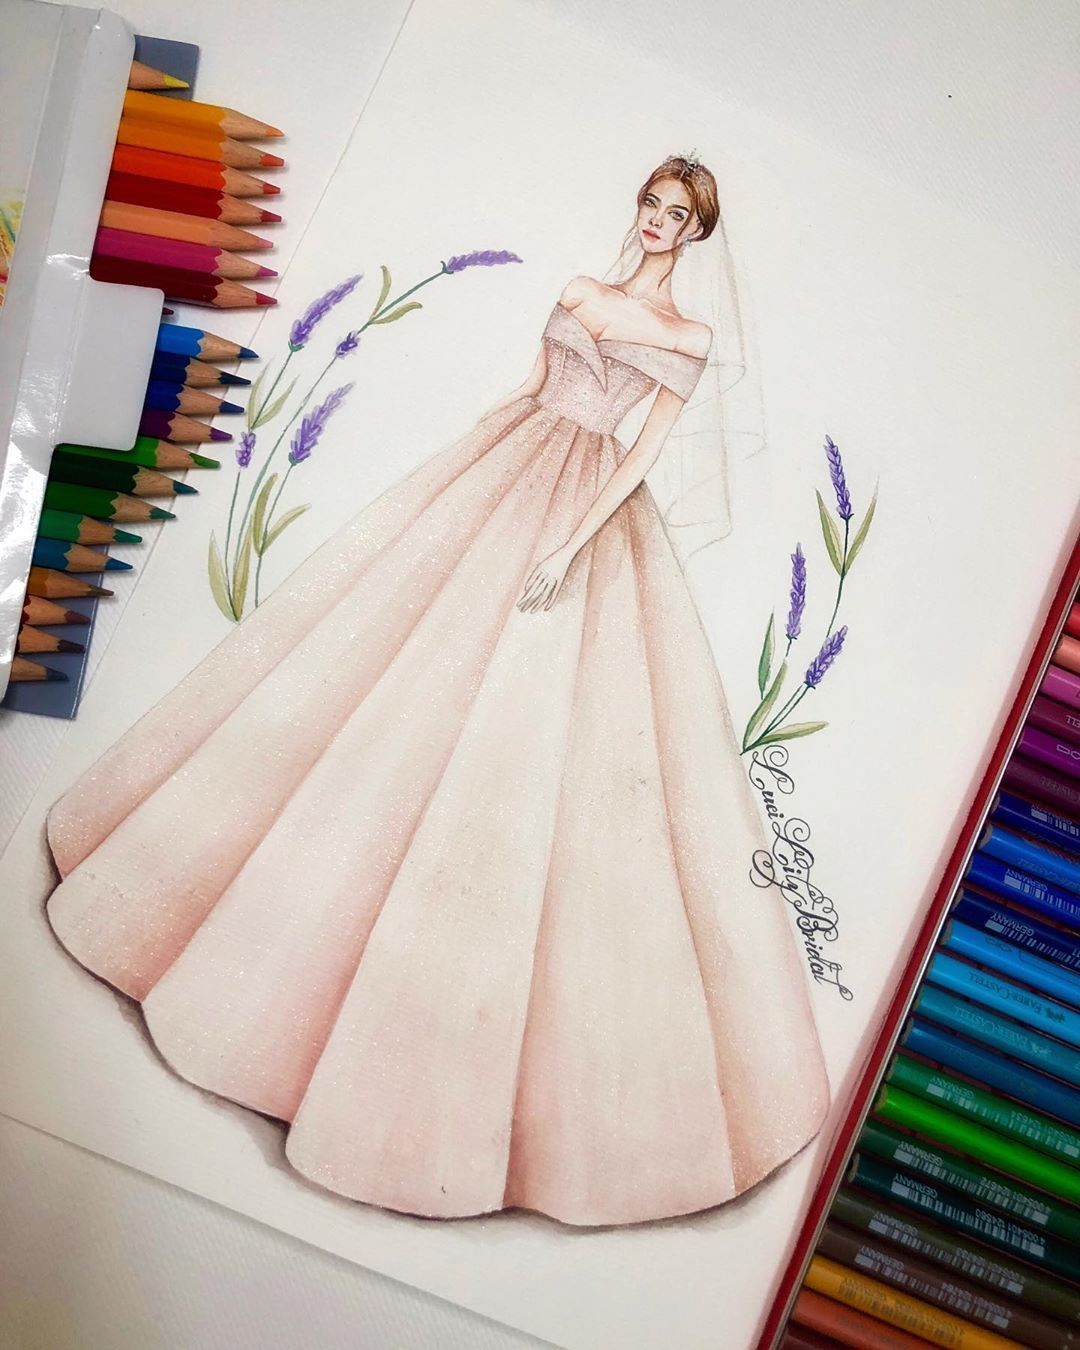 On Instagram Drawing Bridal Dress Watercolor Pe Fashion Illustration Sketches Dresses Dress Design Drawing Fashion Drawing Dresses